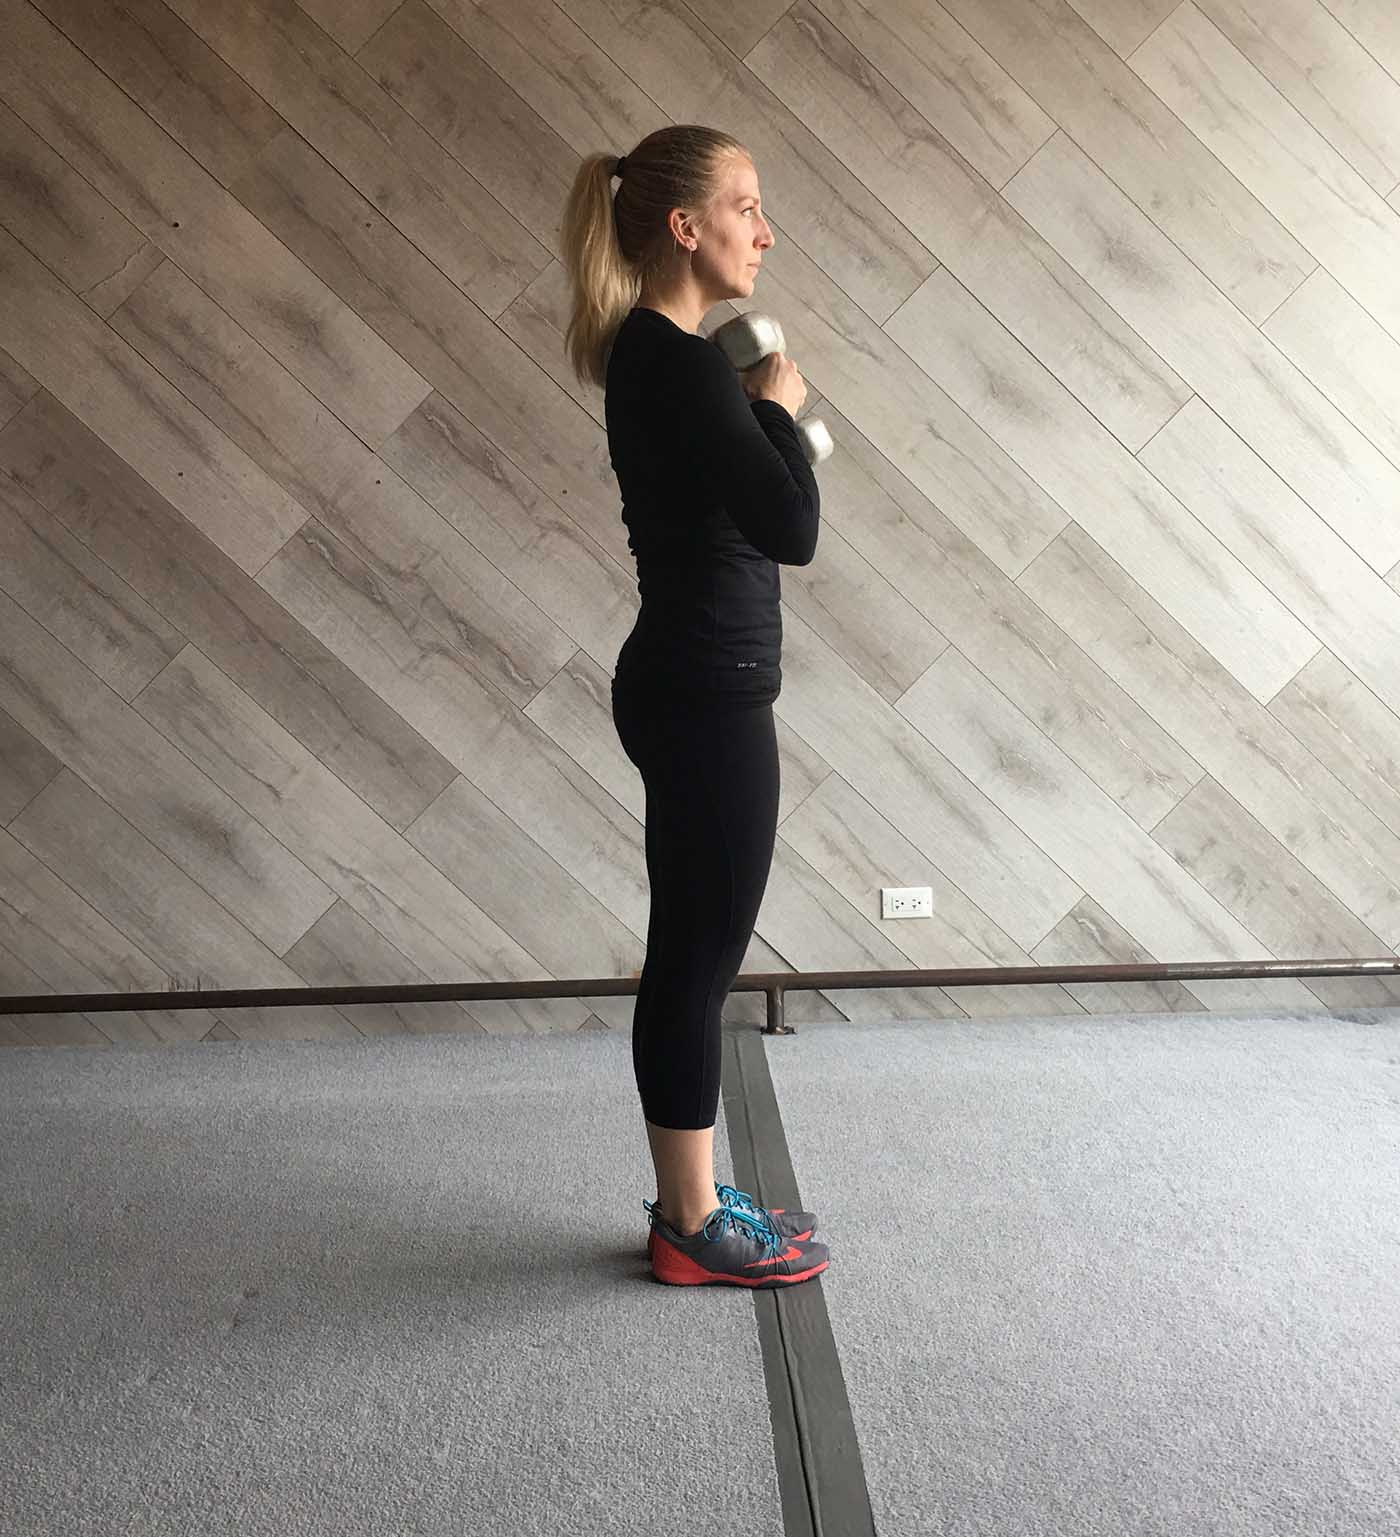 sweatlife_30-minute-workout_17